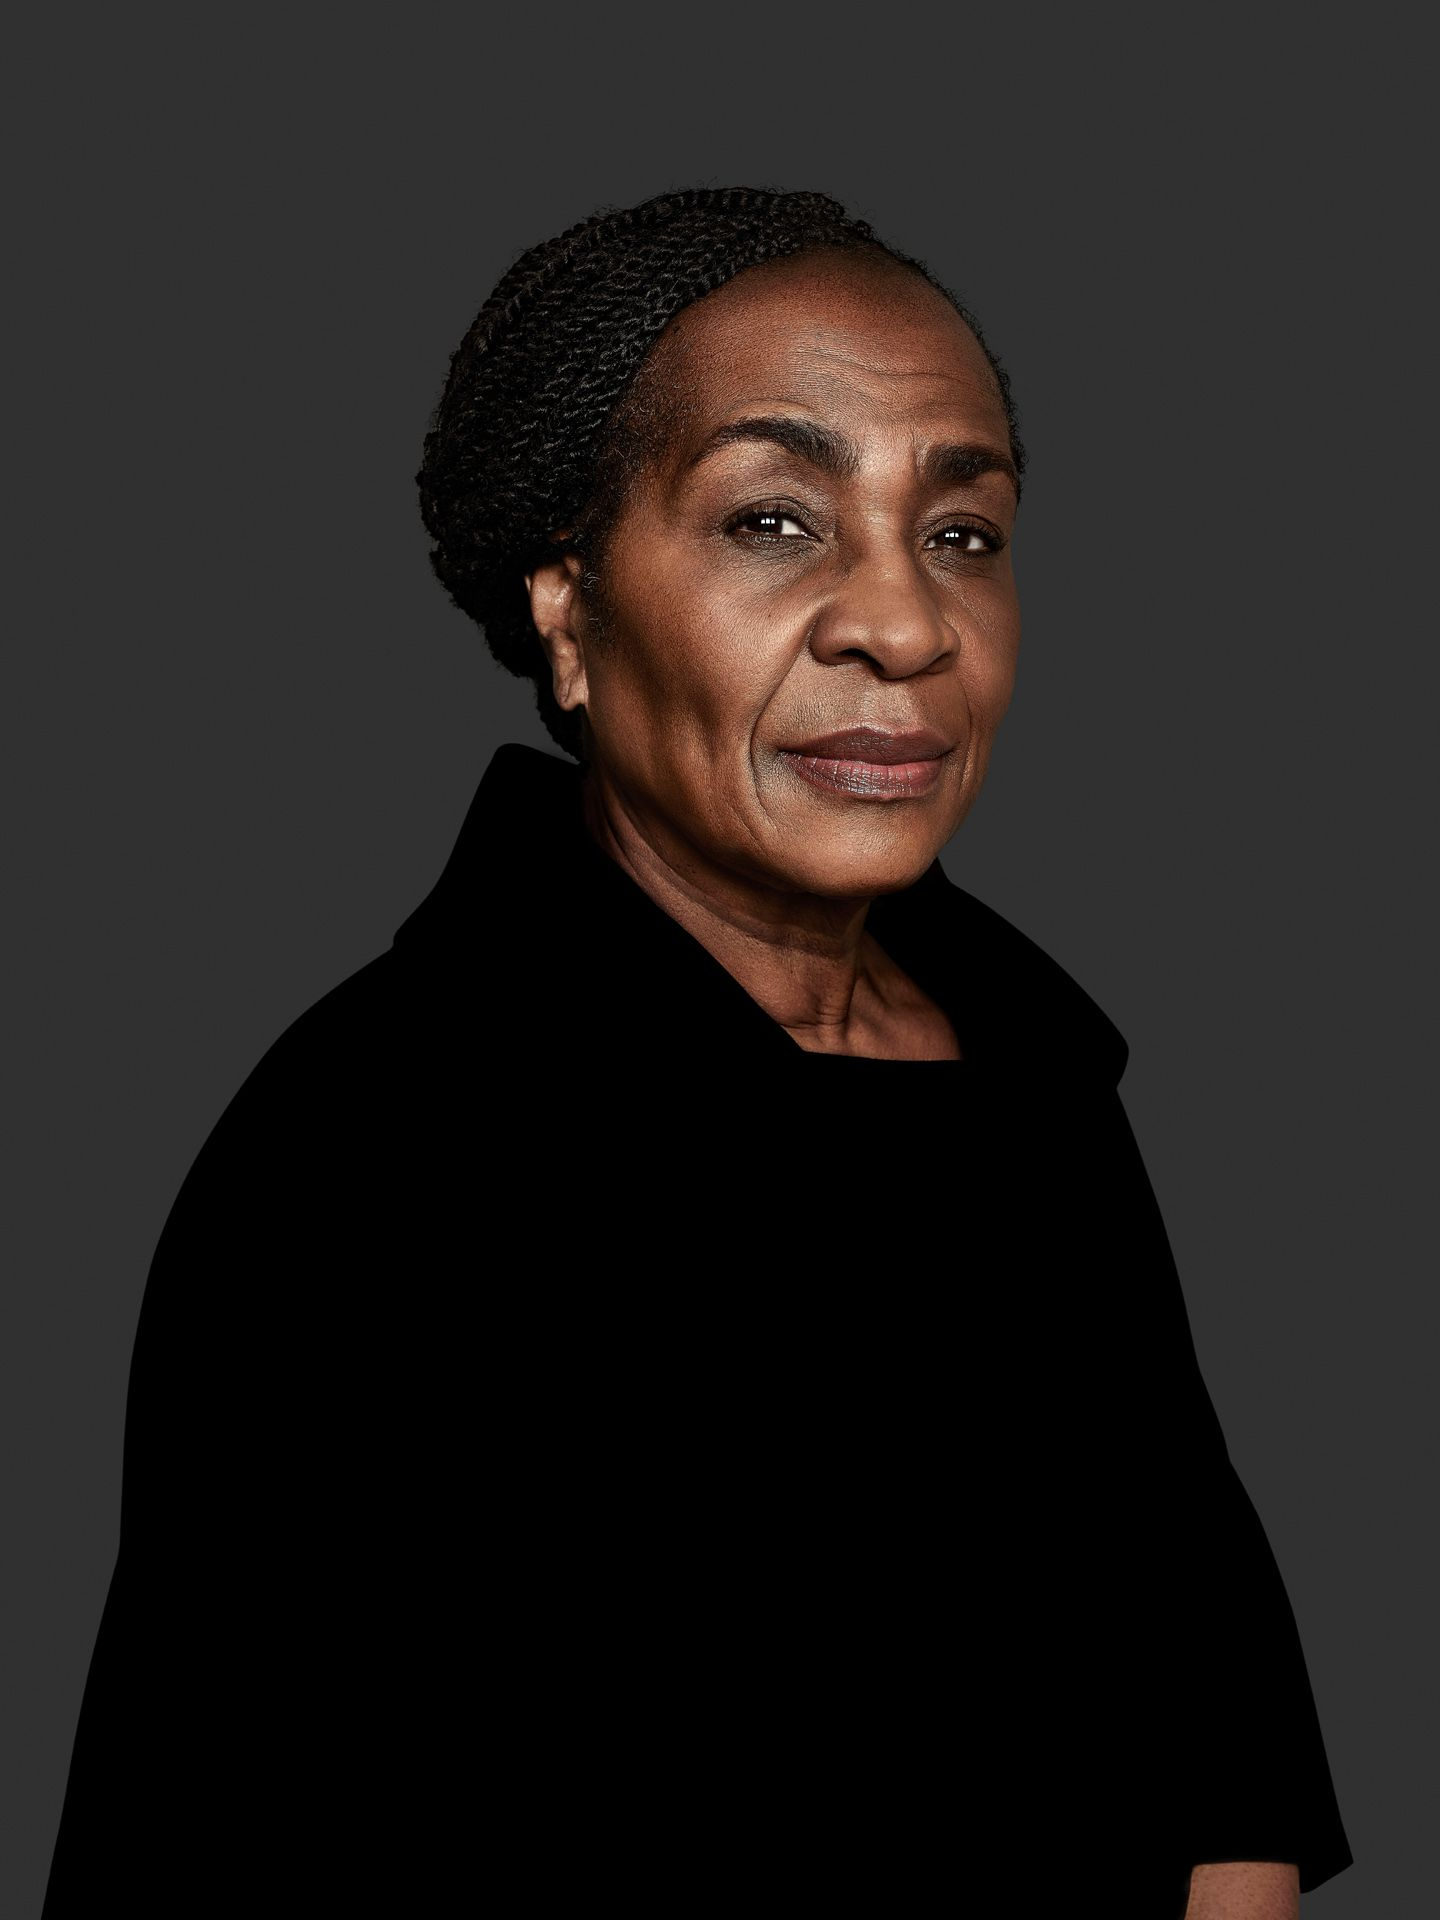 actress Mireille Metellus by Maxyme G Delisle for Duceppe Theatre with Publicis